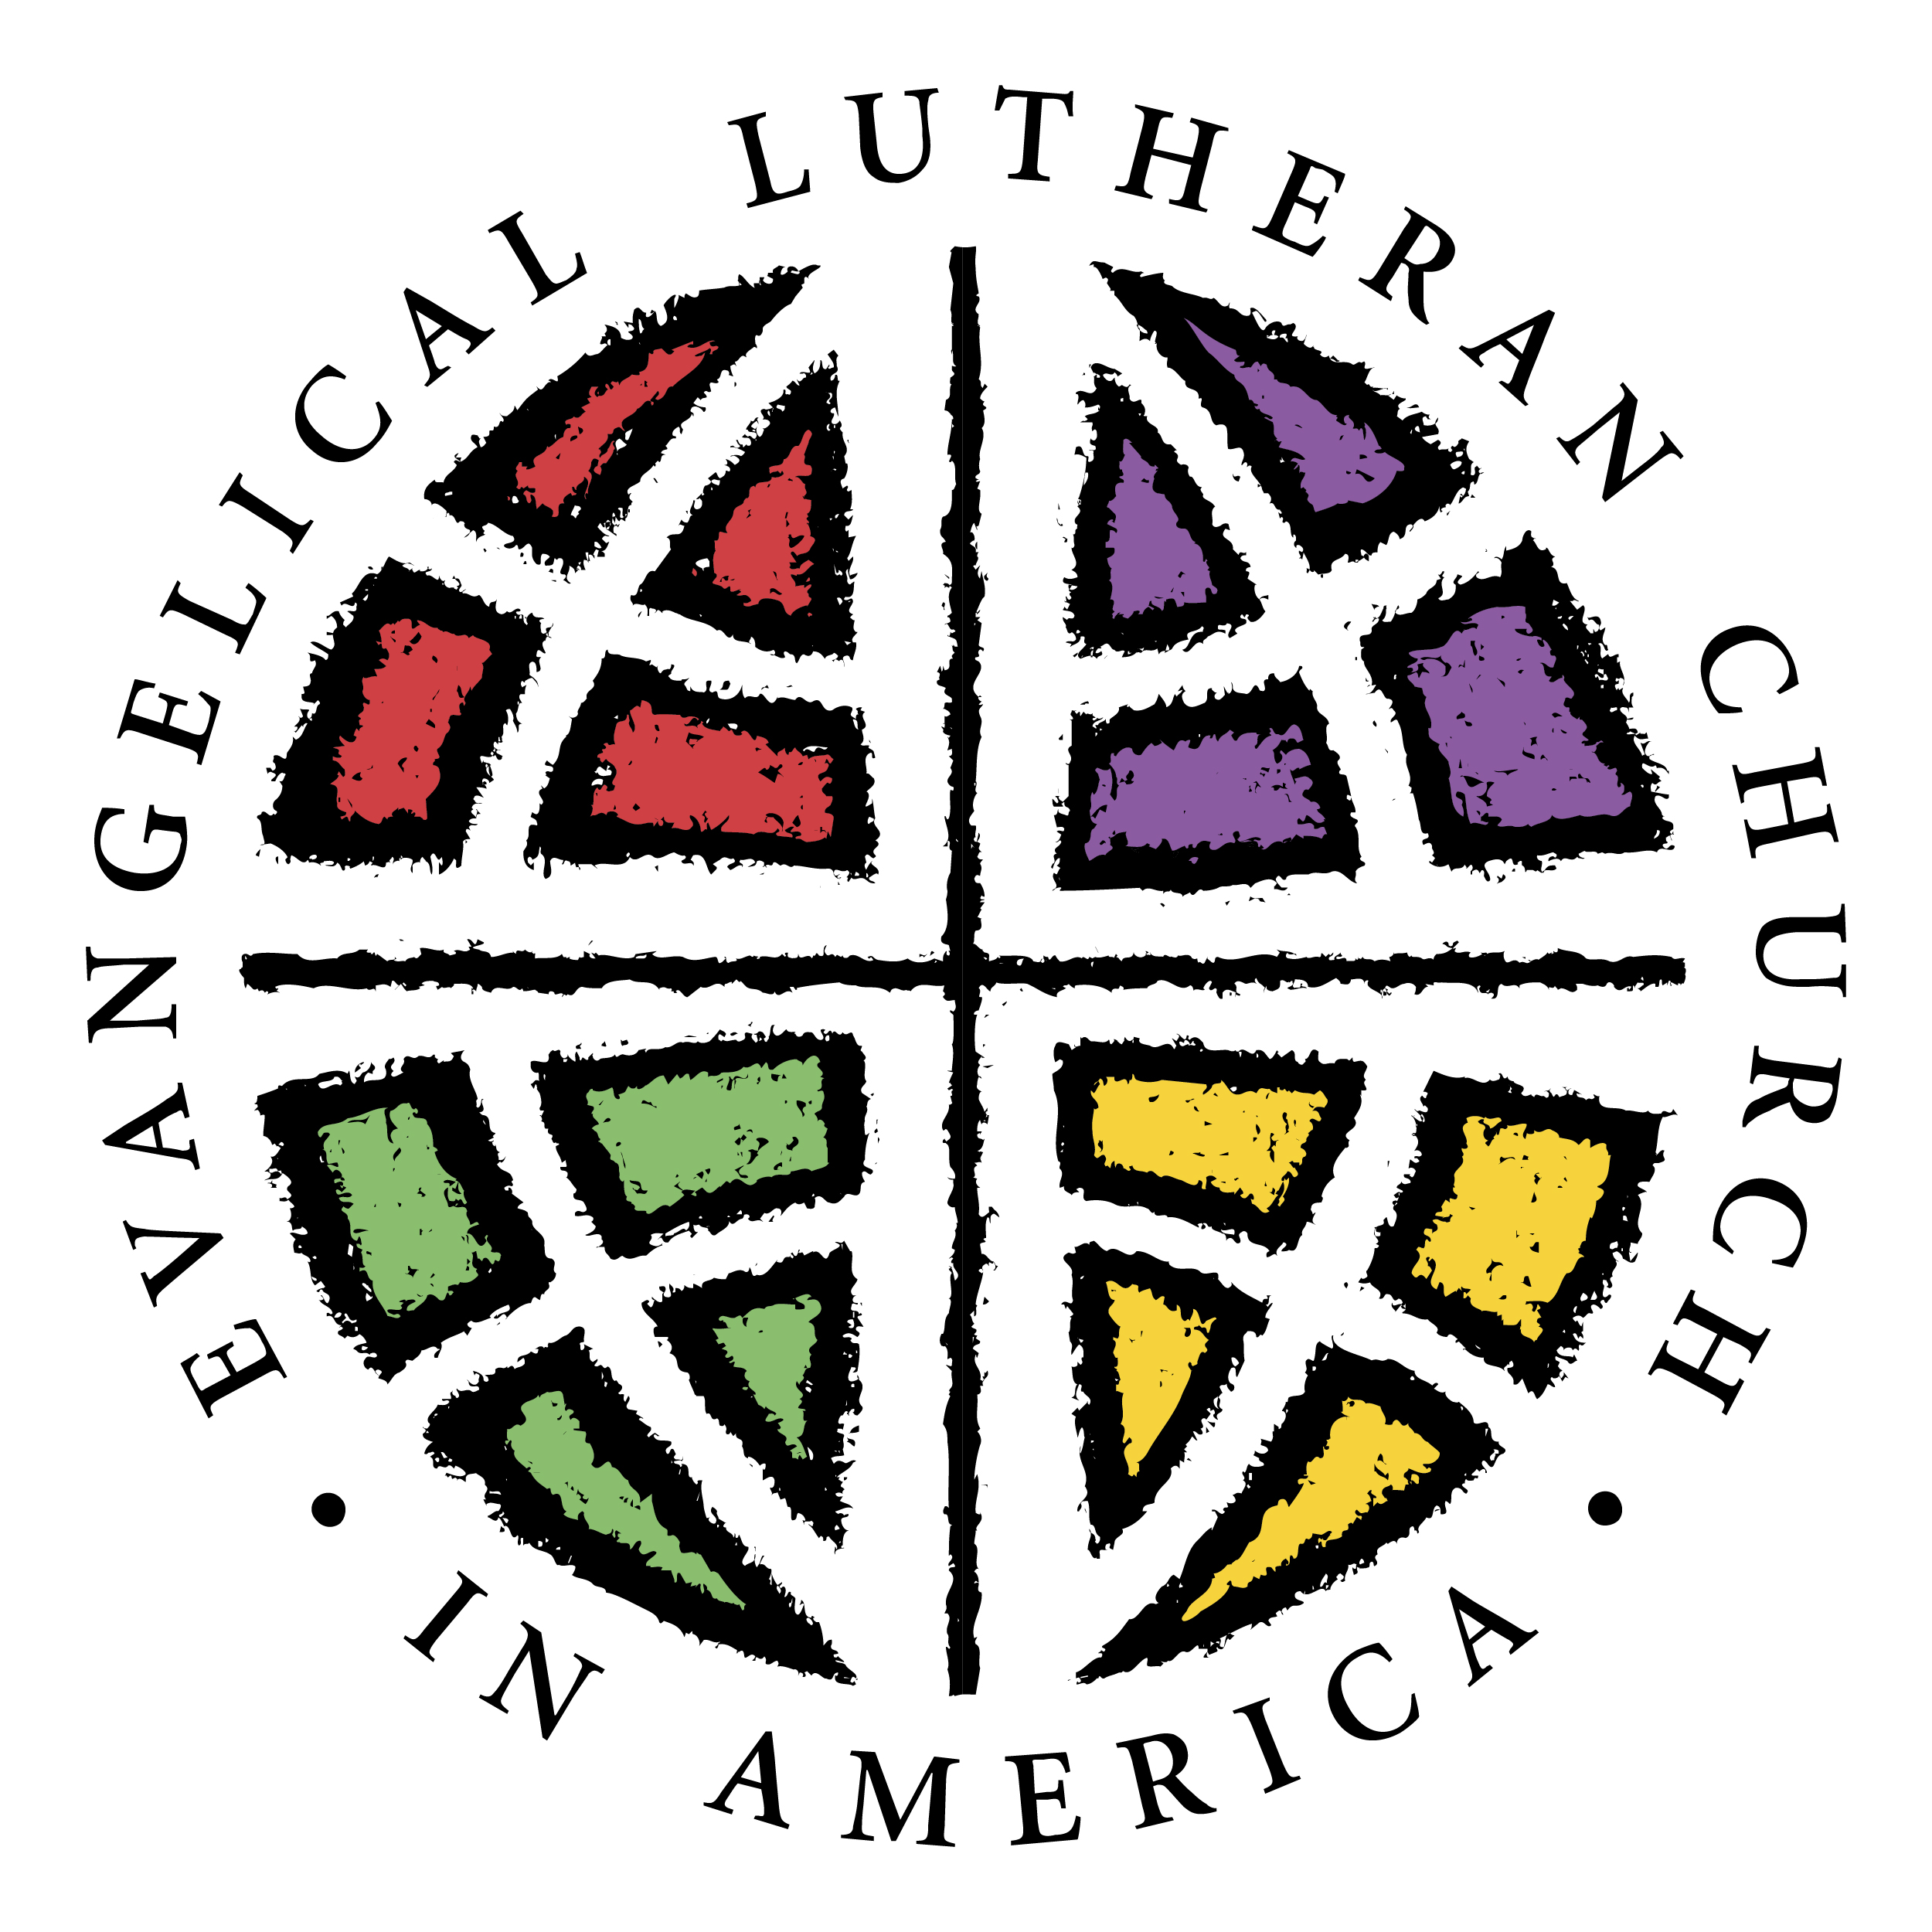 evangelical-lutheran-church-in-america.jpg